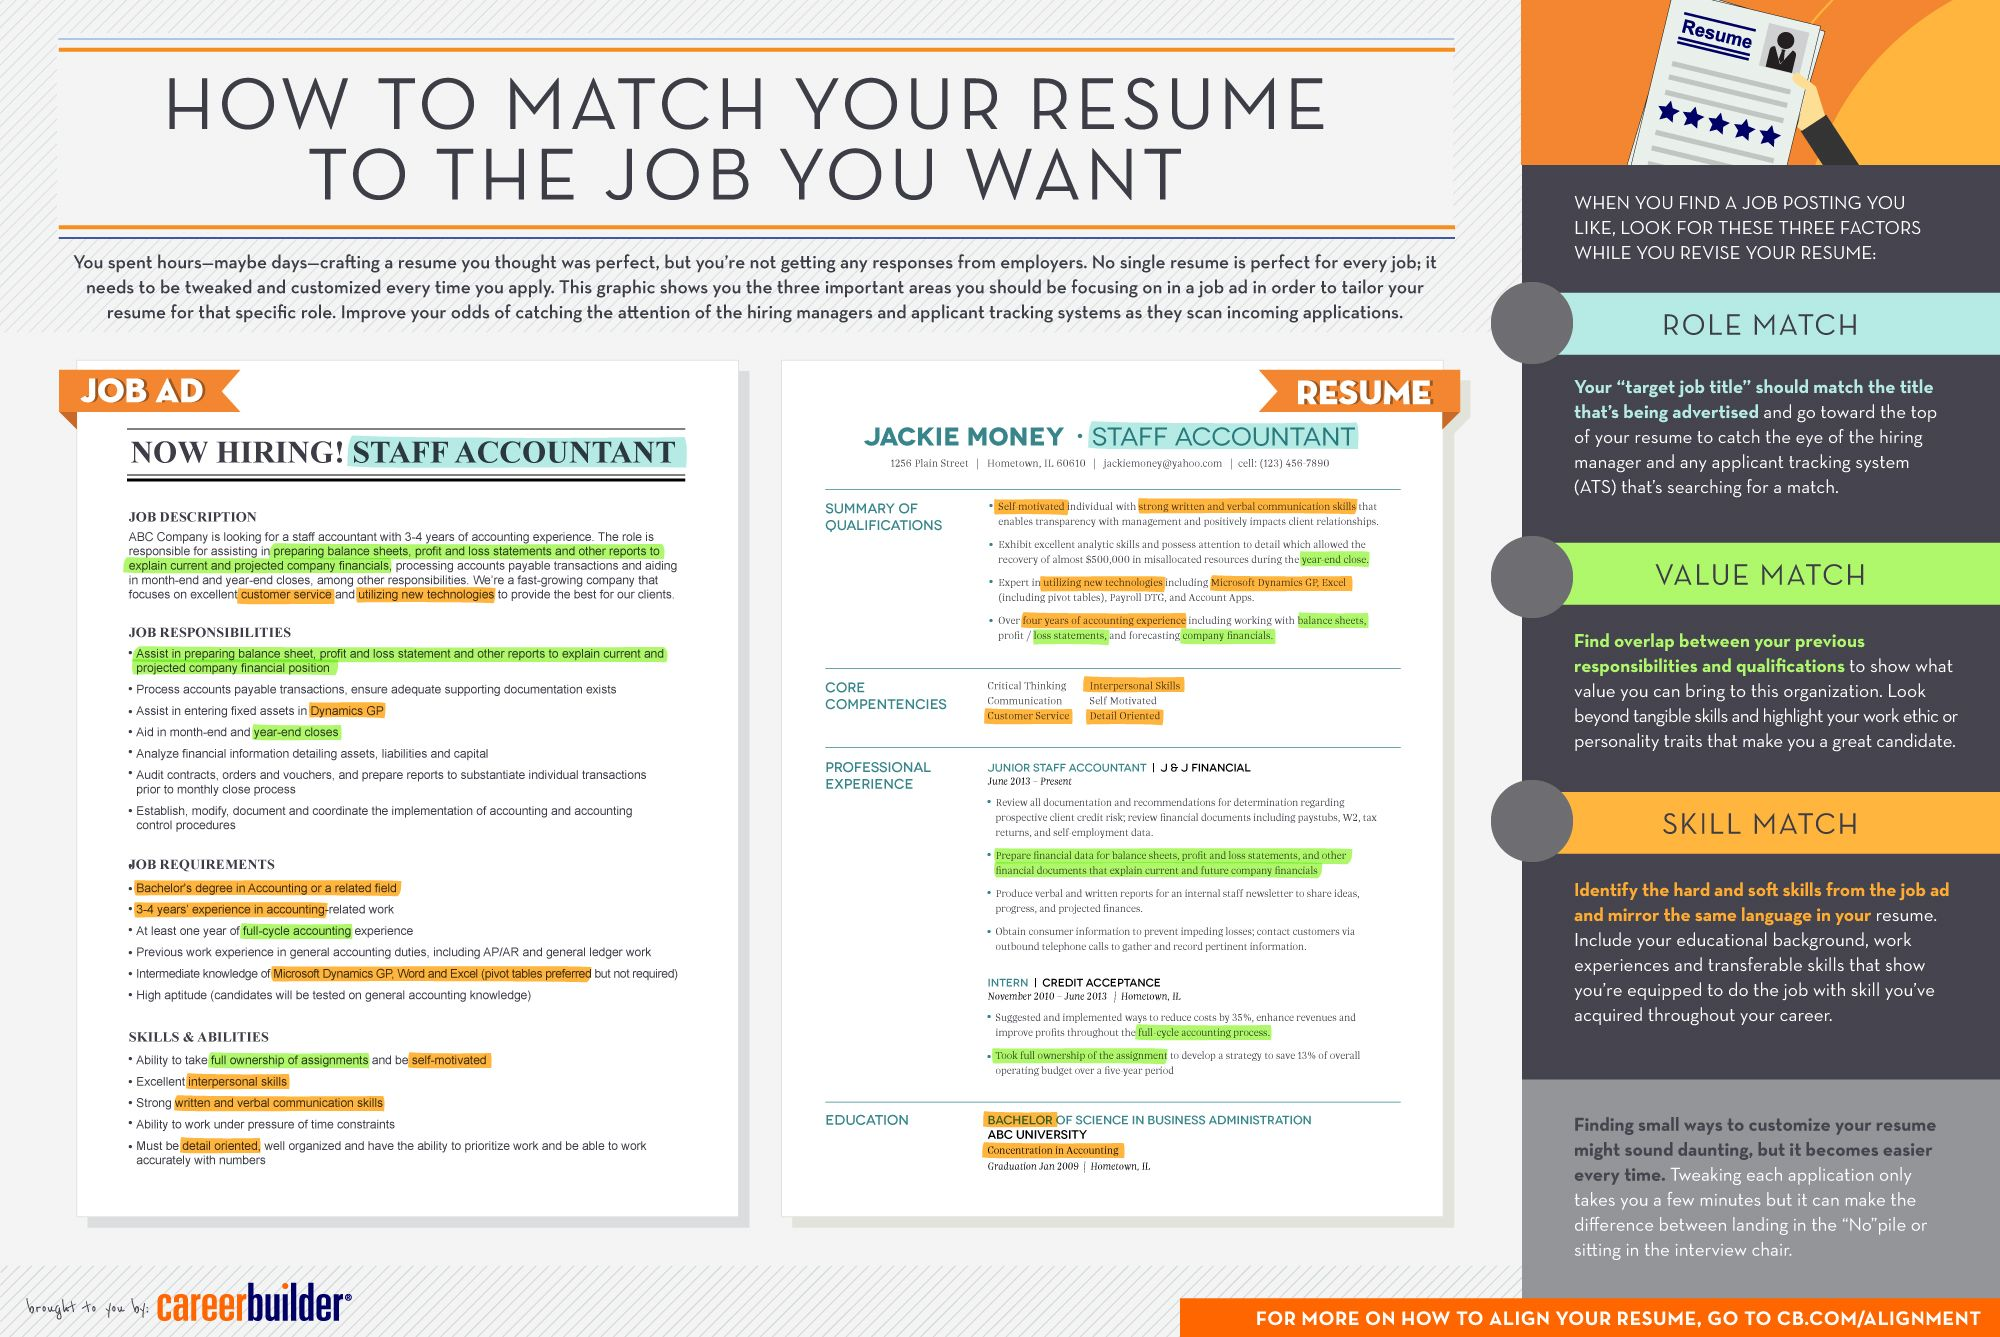 HereS How To Use Job Descriptions To Tailor Your Resume